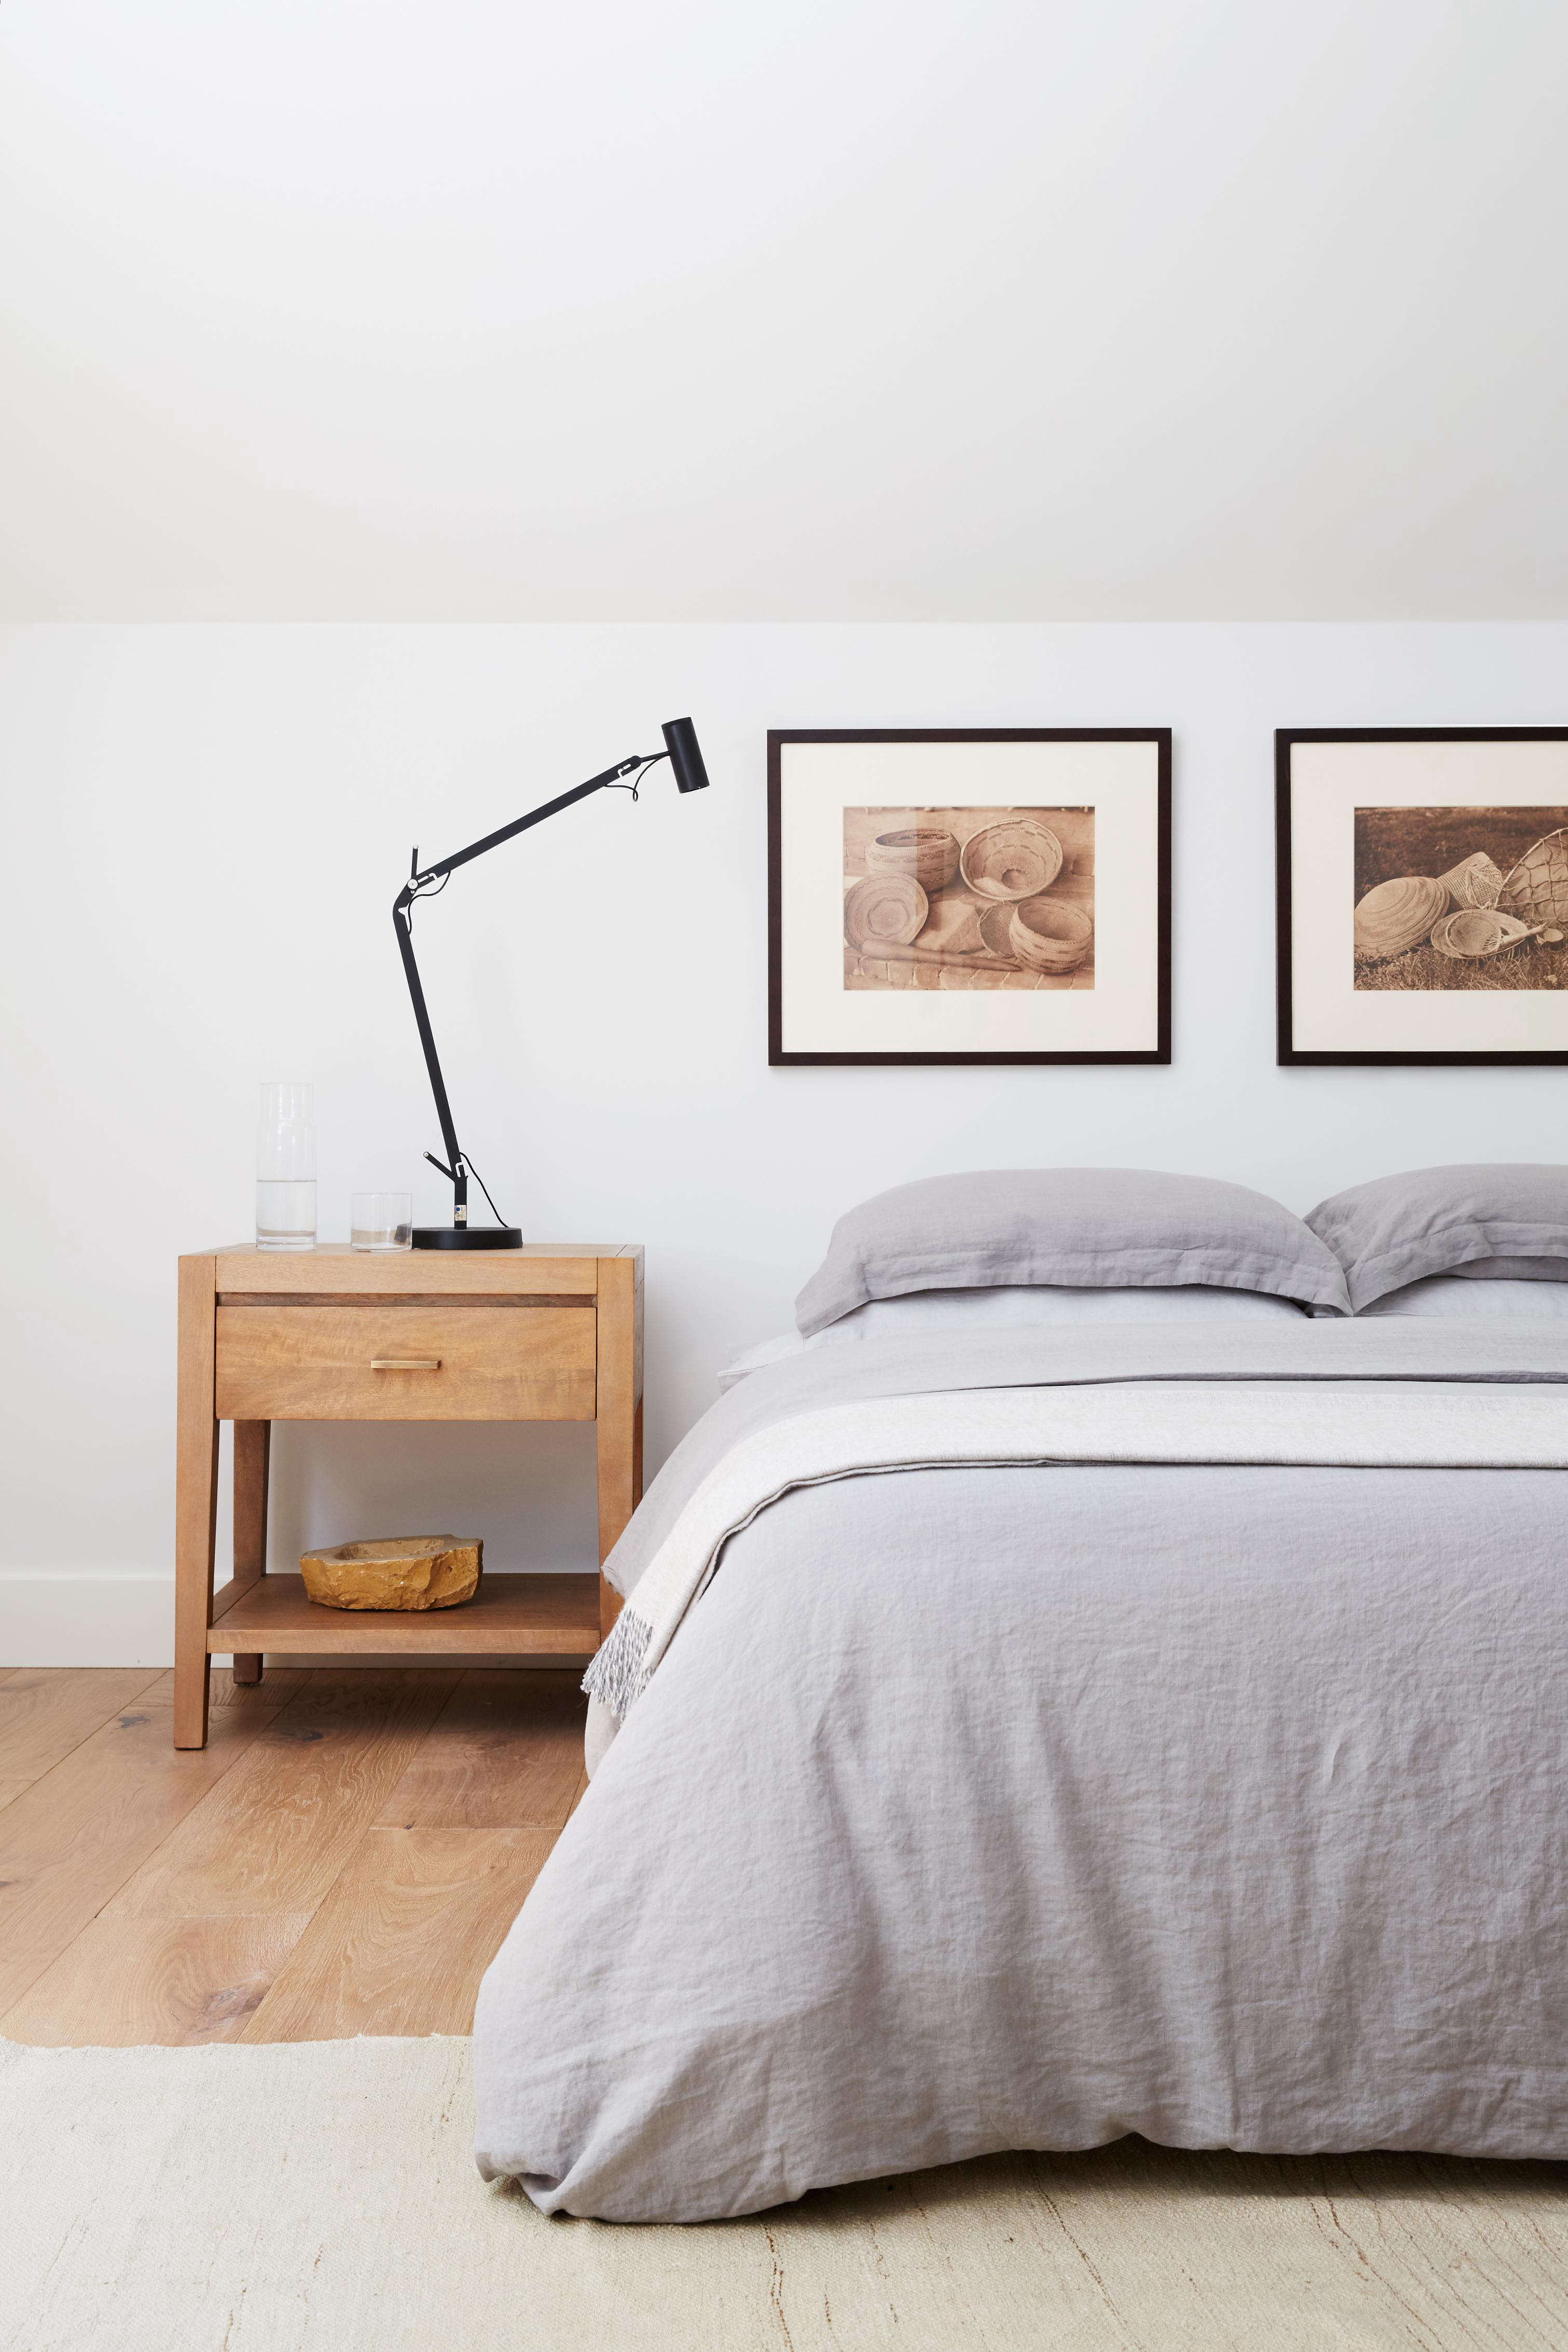 simo design beverly hills house   remodelista 18